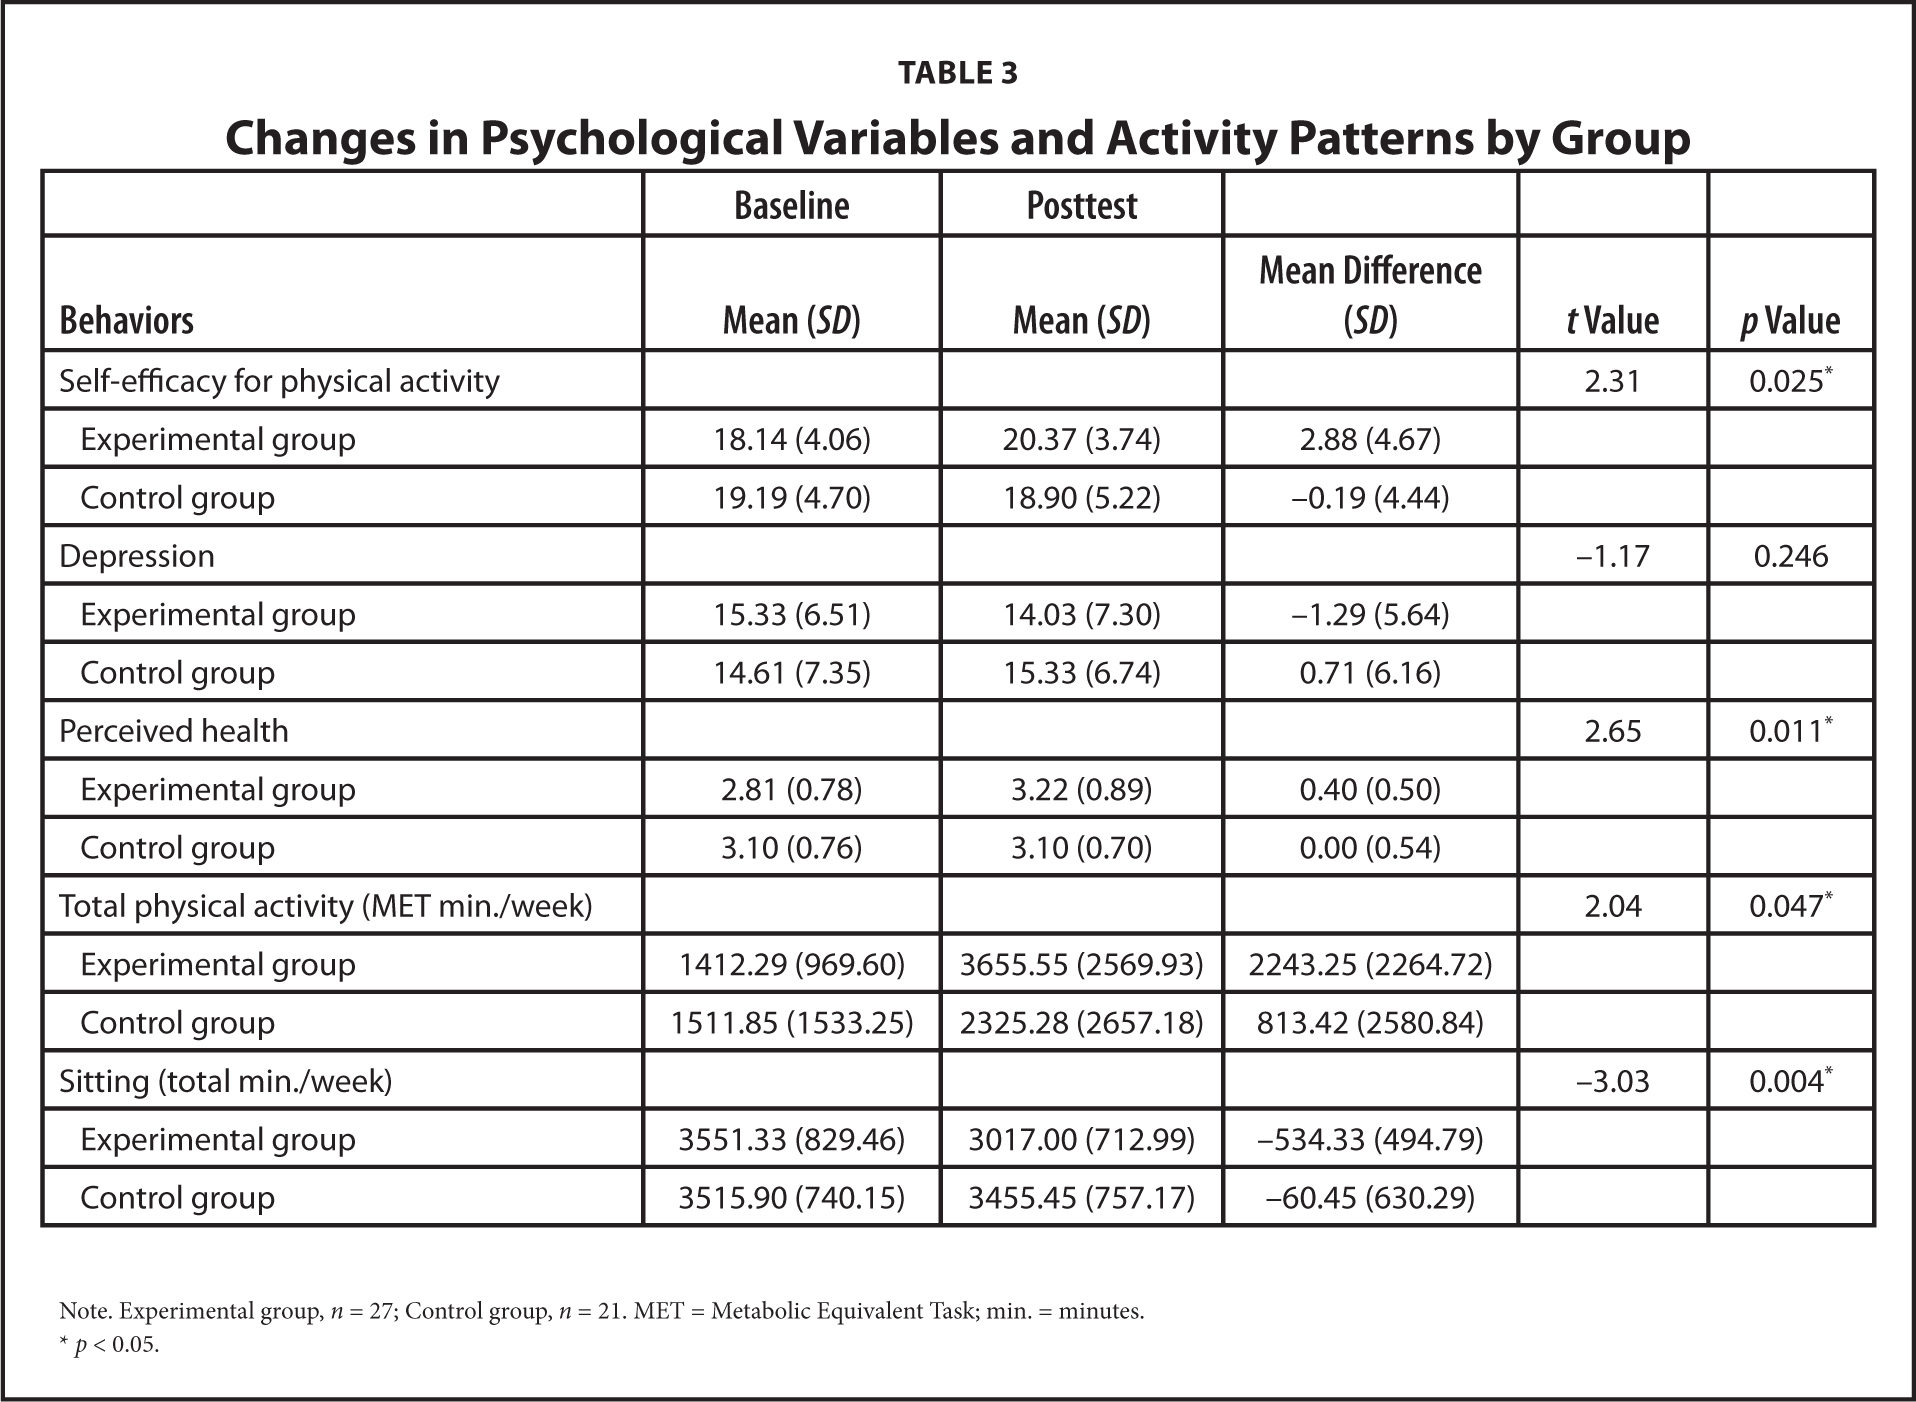 Changes in Psychological Variables and Activity Patterns by Group